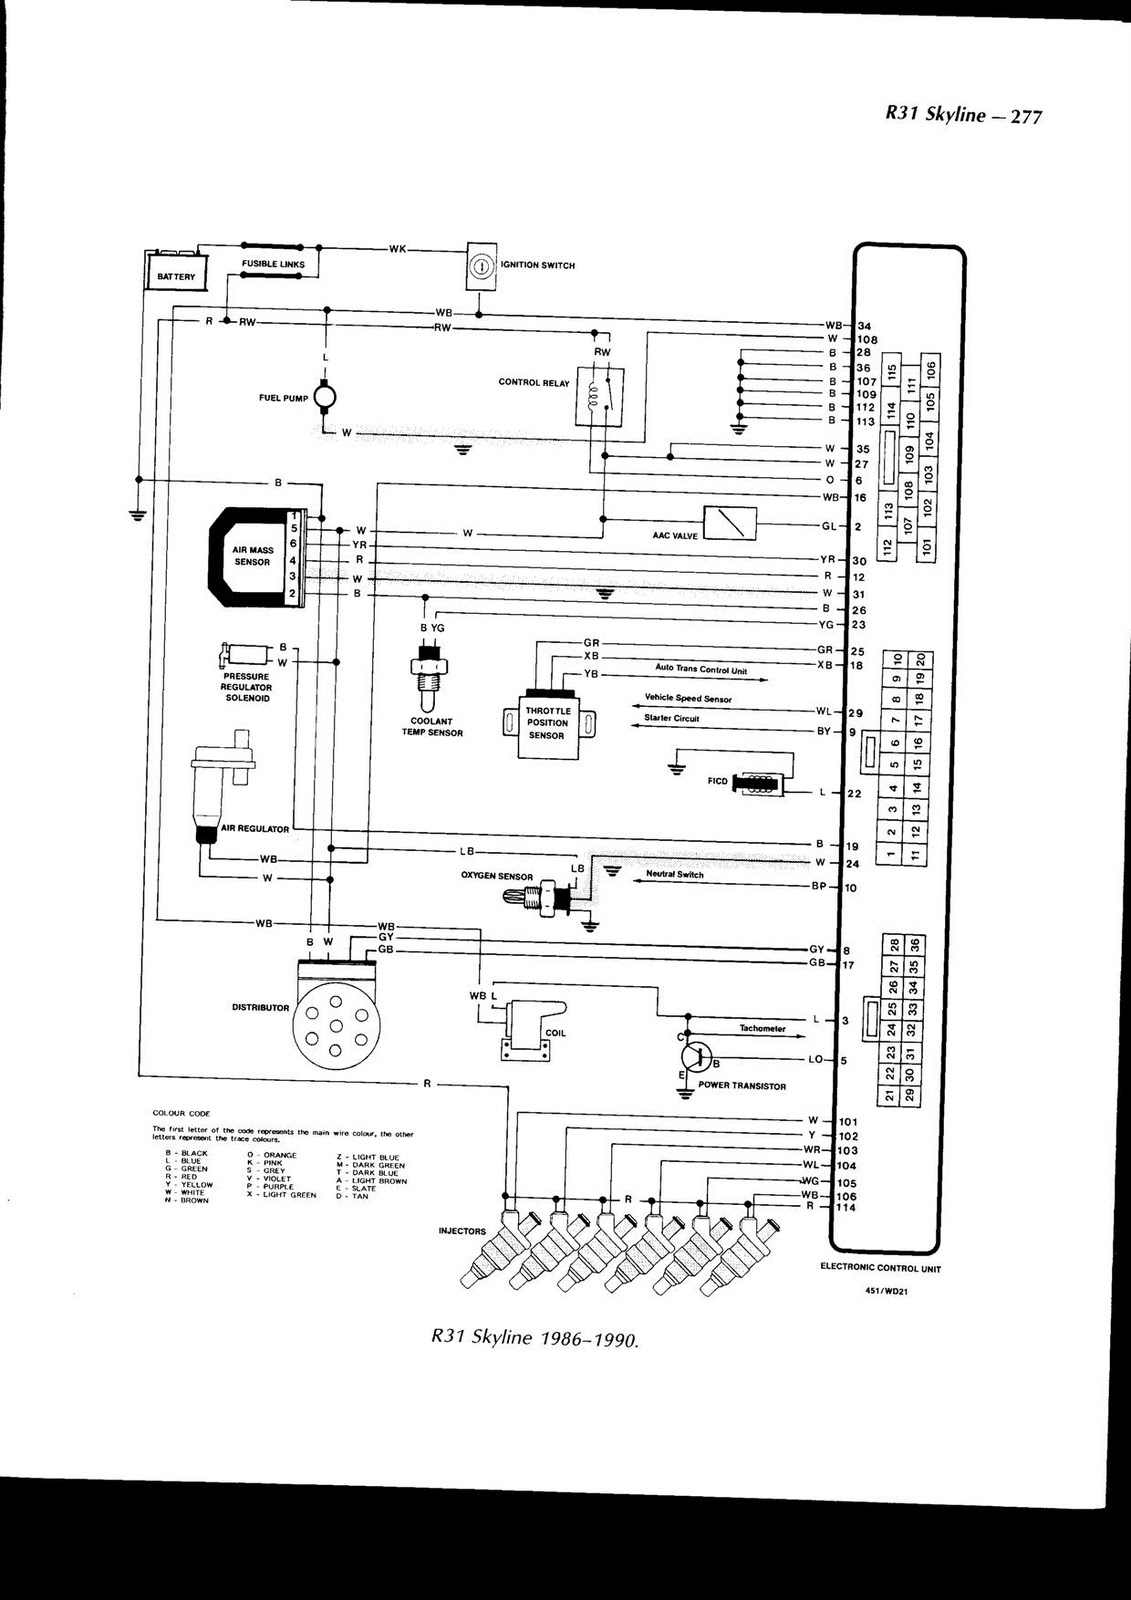 Alternator Wiring Diagram 280zx Free Download 80 Harness Pinout Moreover Rb20det On Turbo Combination Switch At